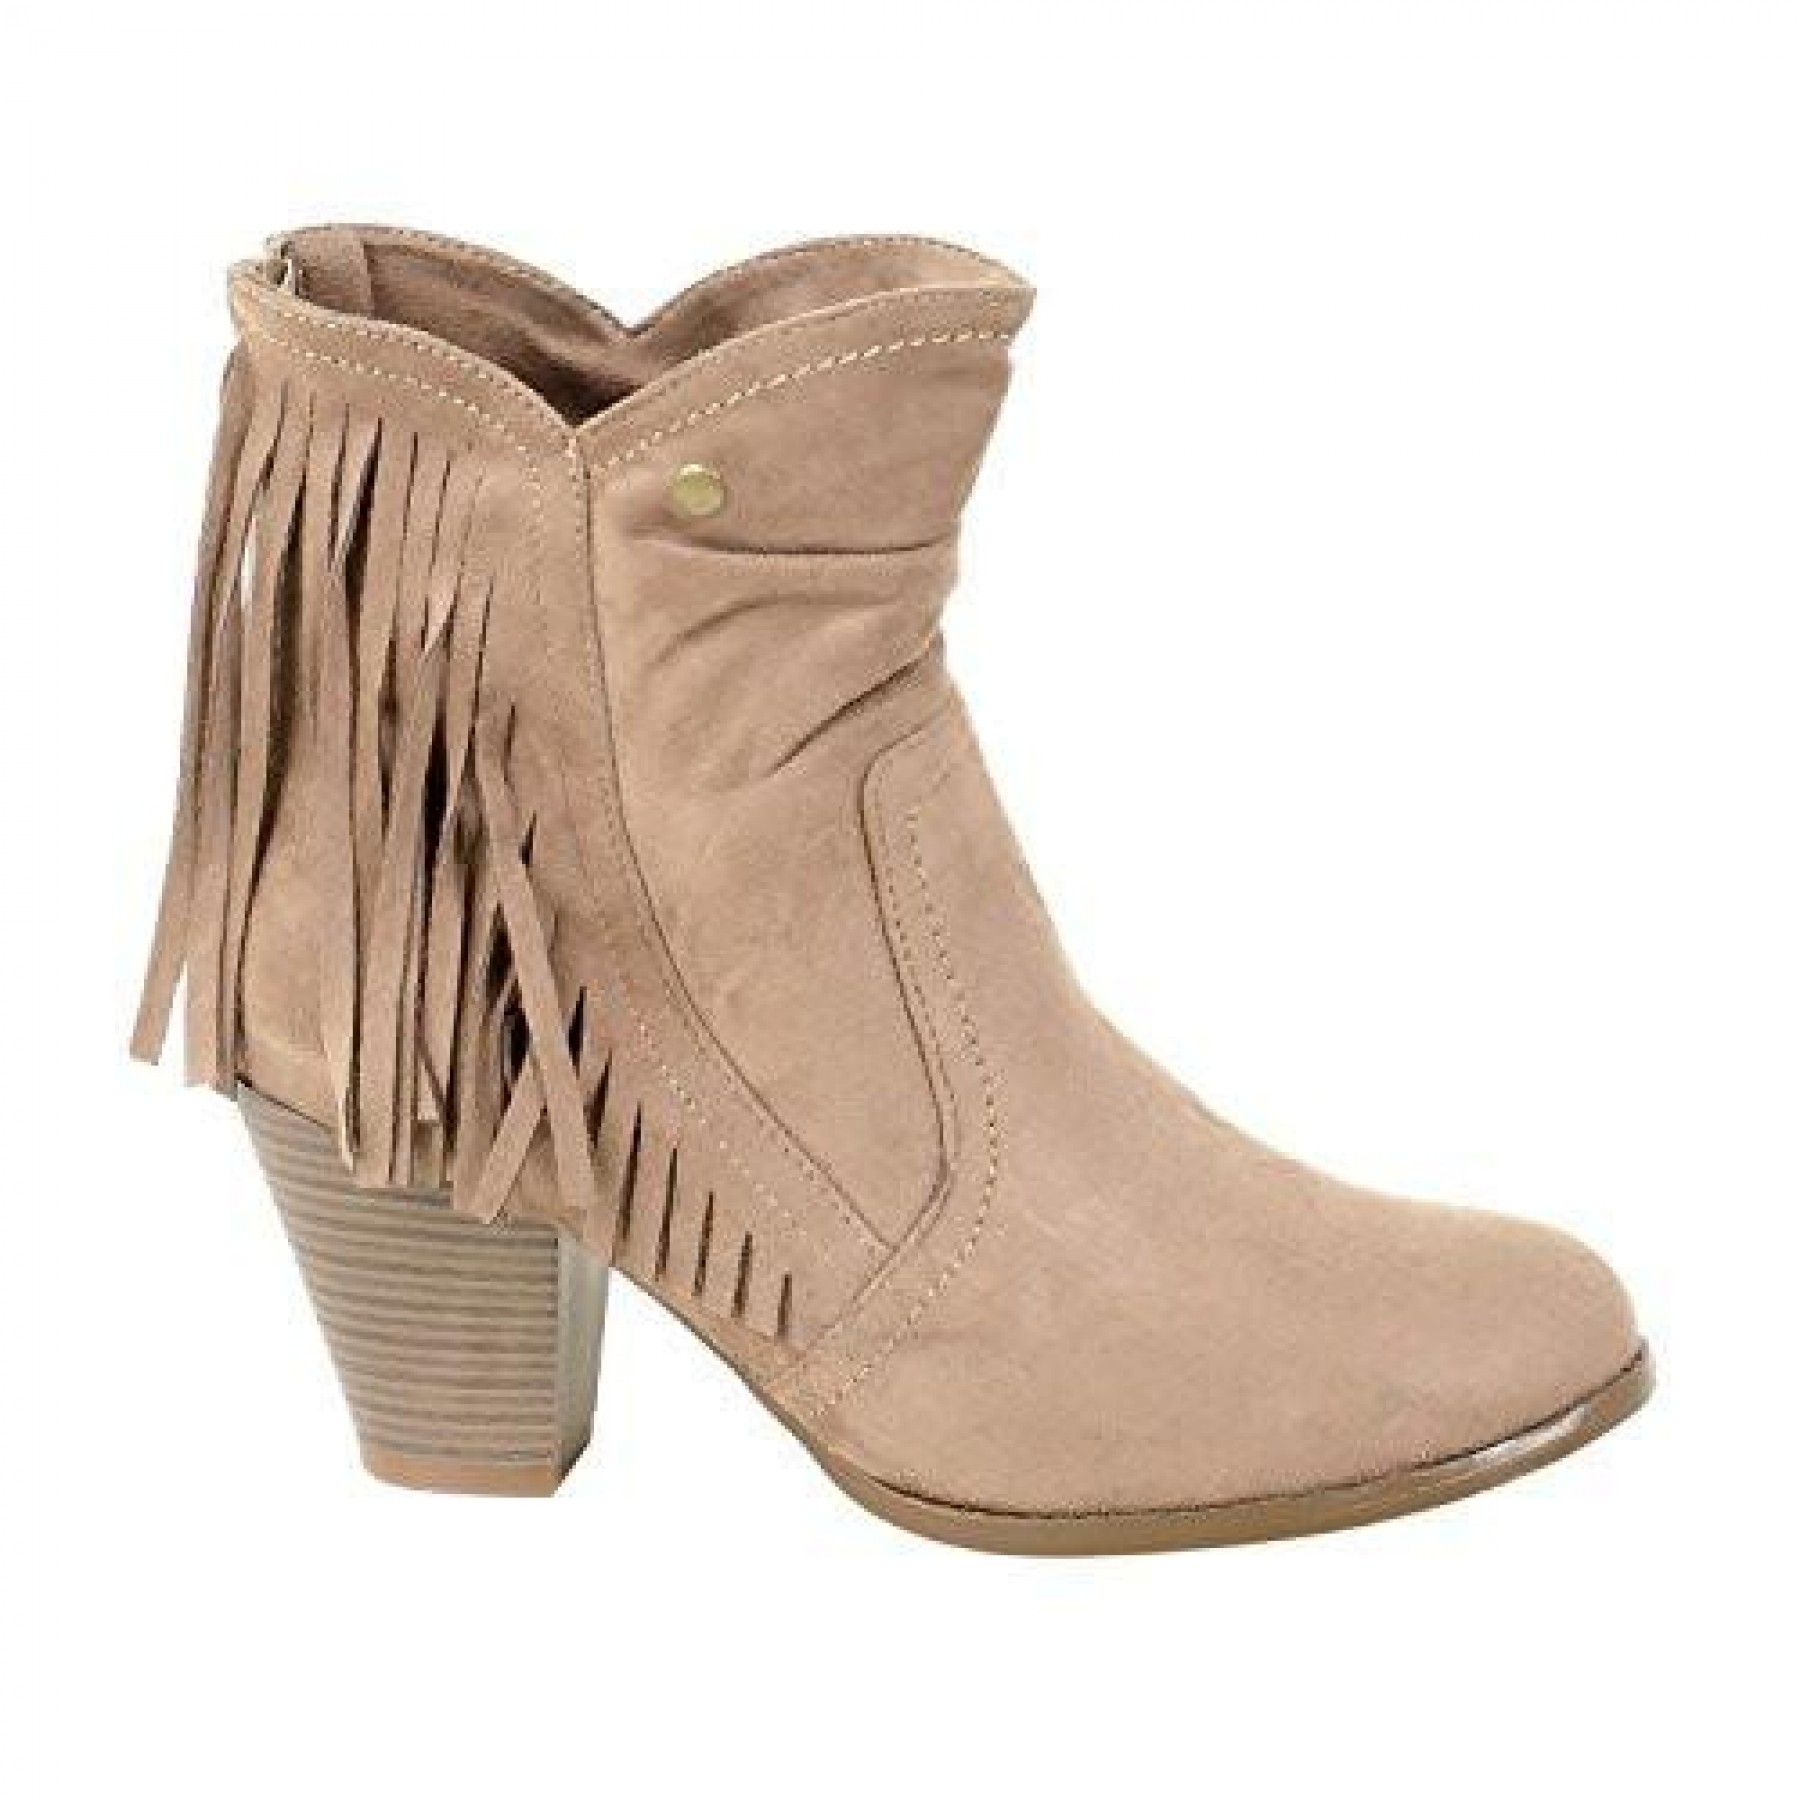 Women's Khaki Manmade Nickllenna 3-inch Heeled Boot with Western-Style Fringe